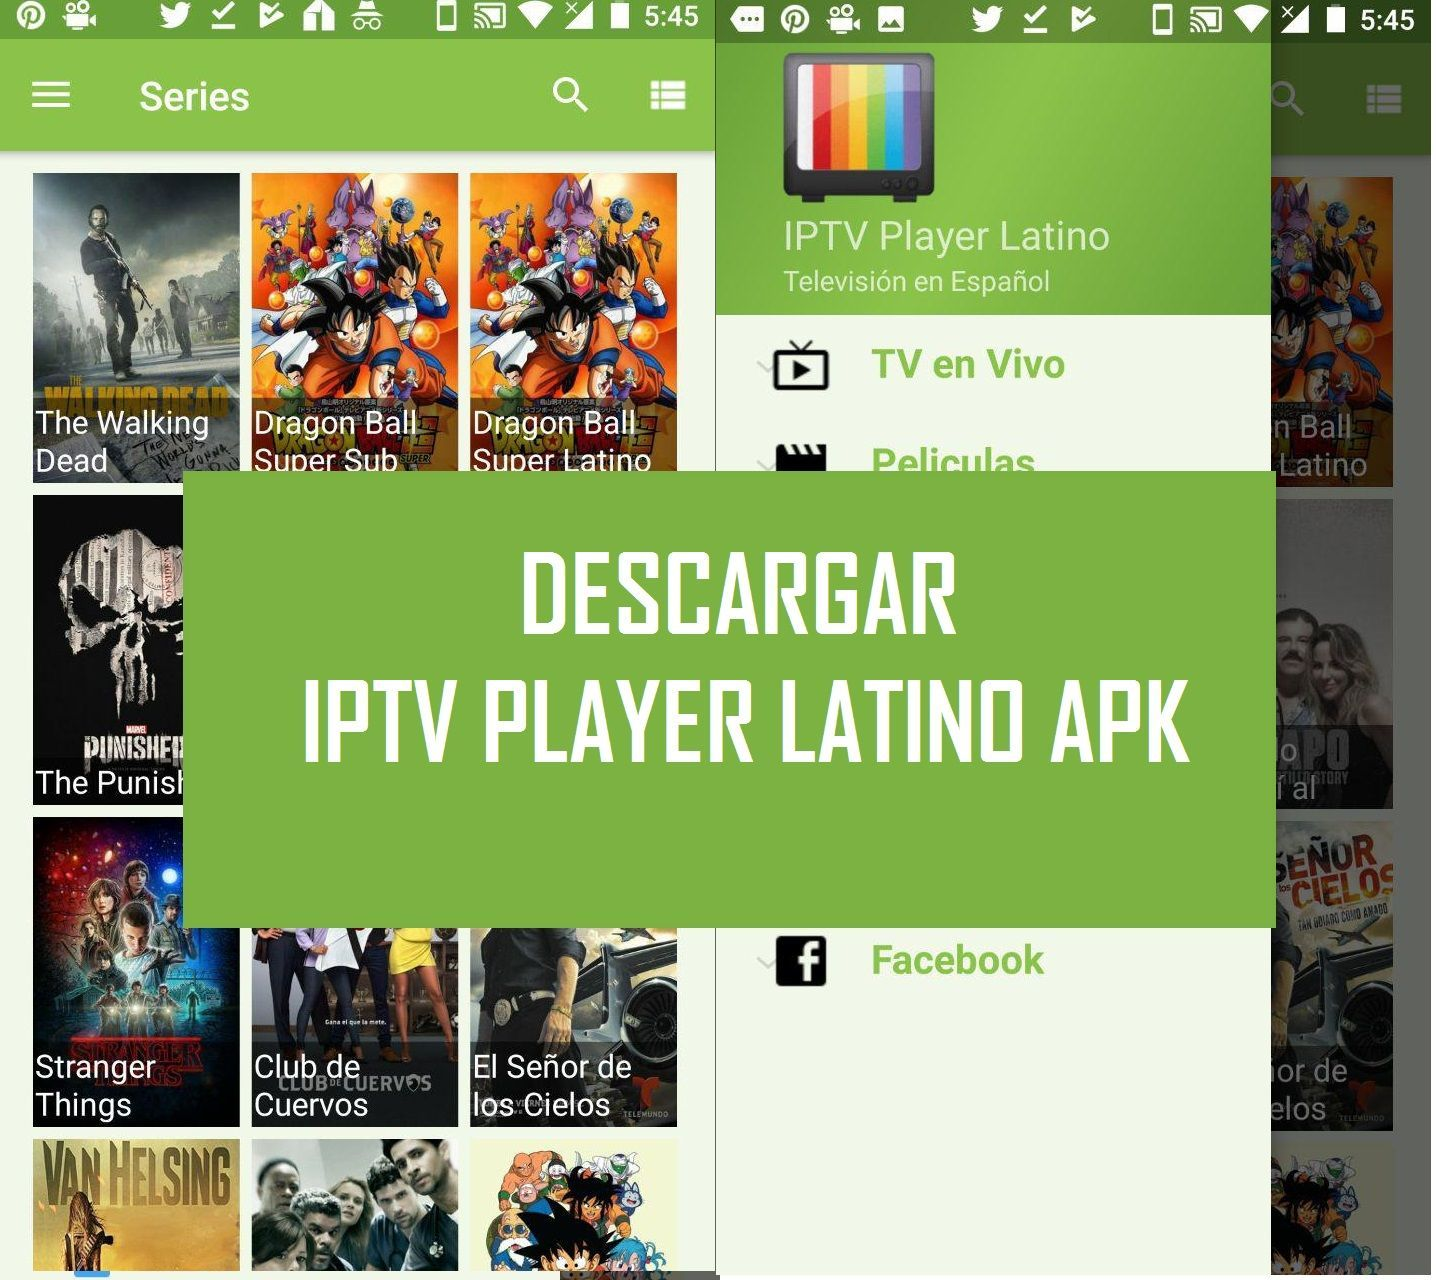 ❤️ Descargar IPTV Player Latino apk gratis para Android 2018